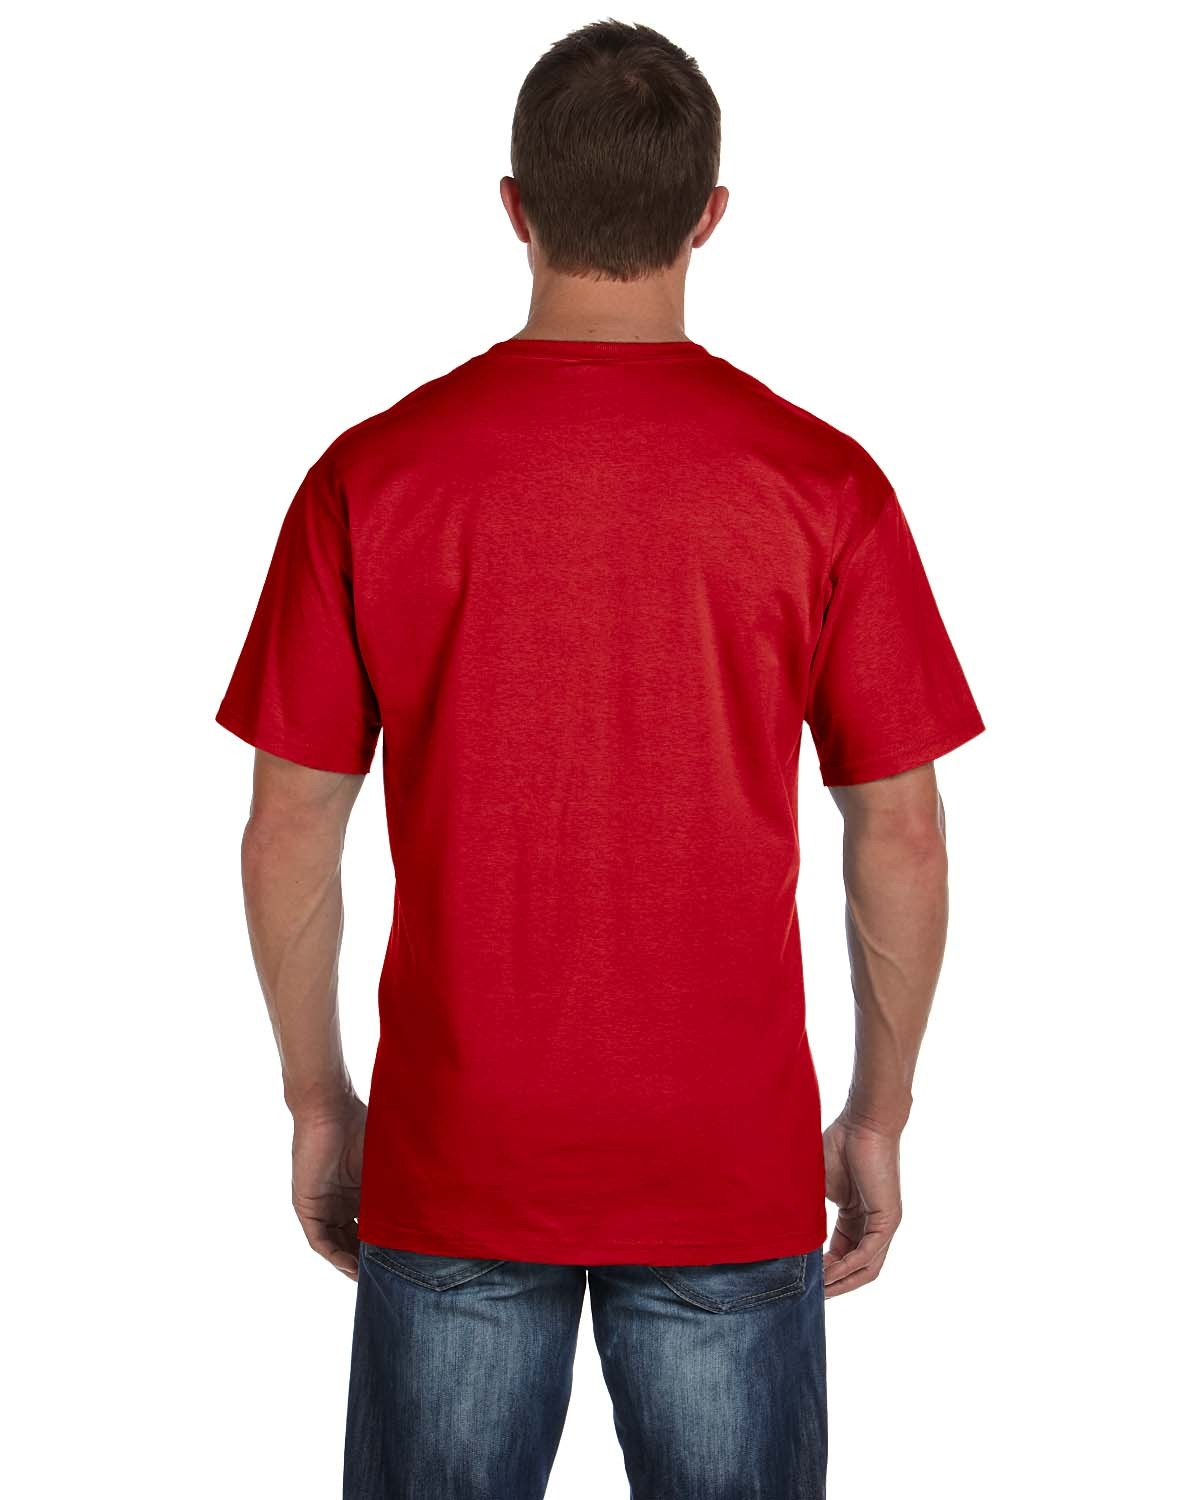 3931P Fruit of the Loom TRUE RED